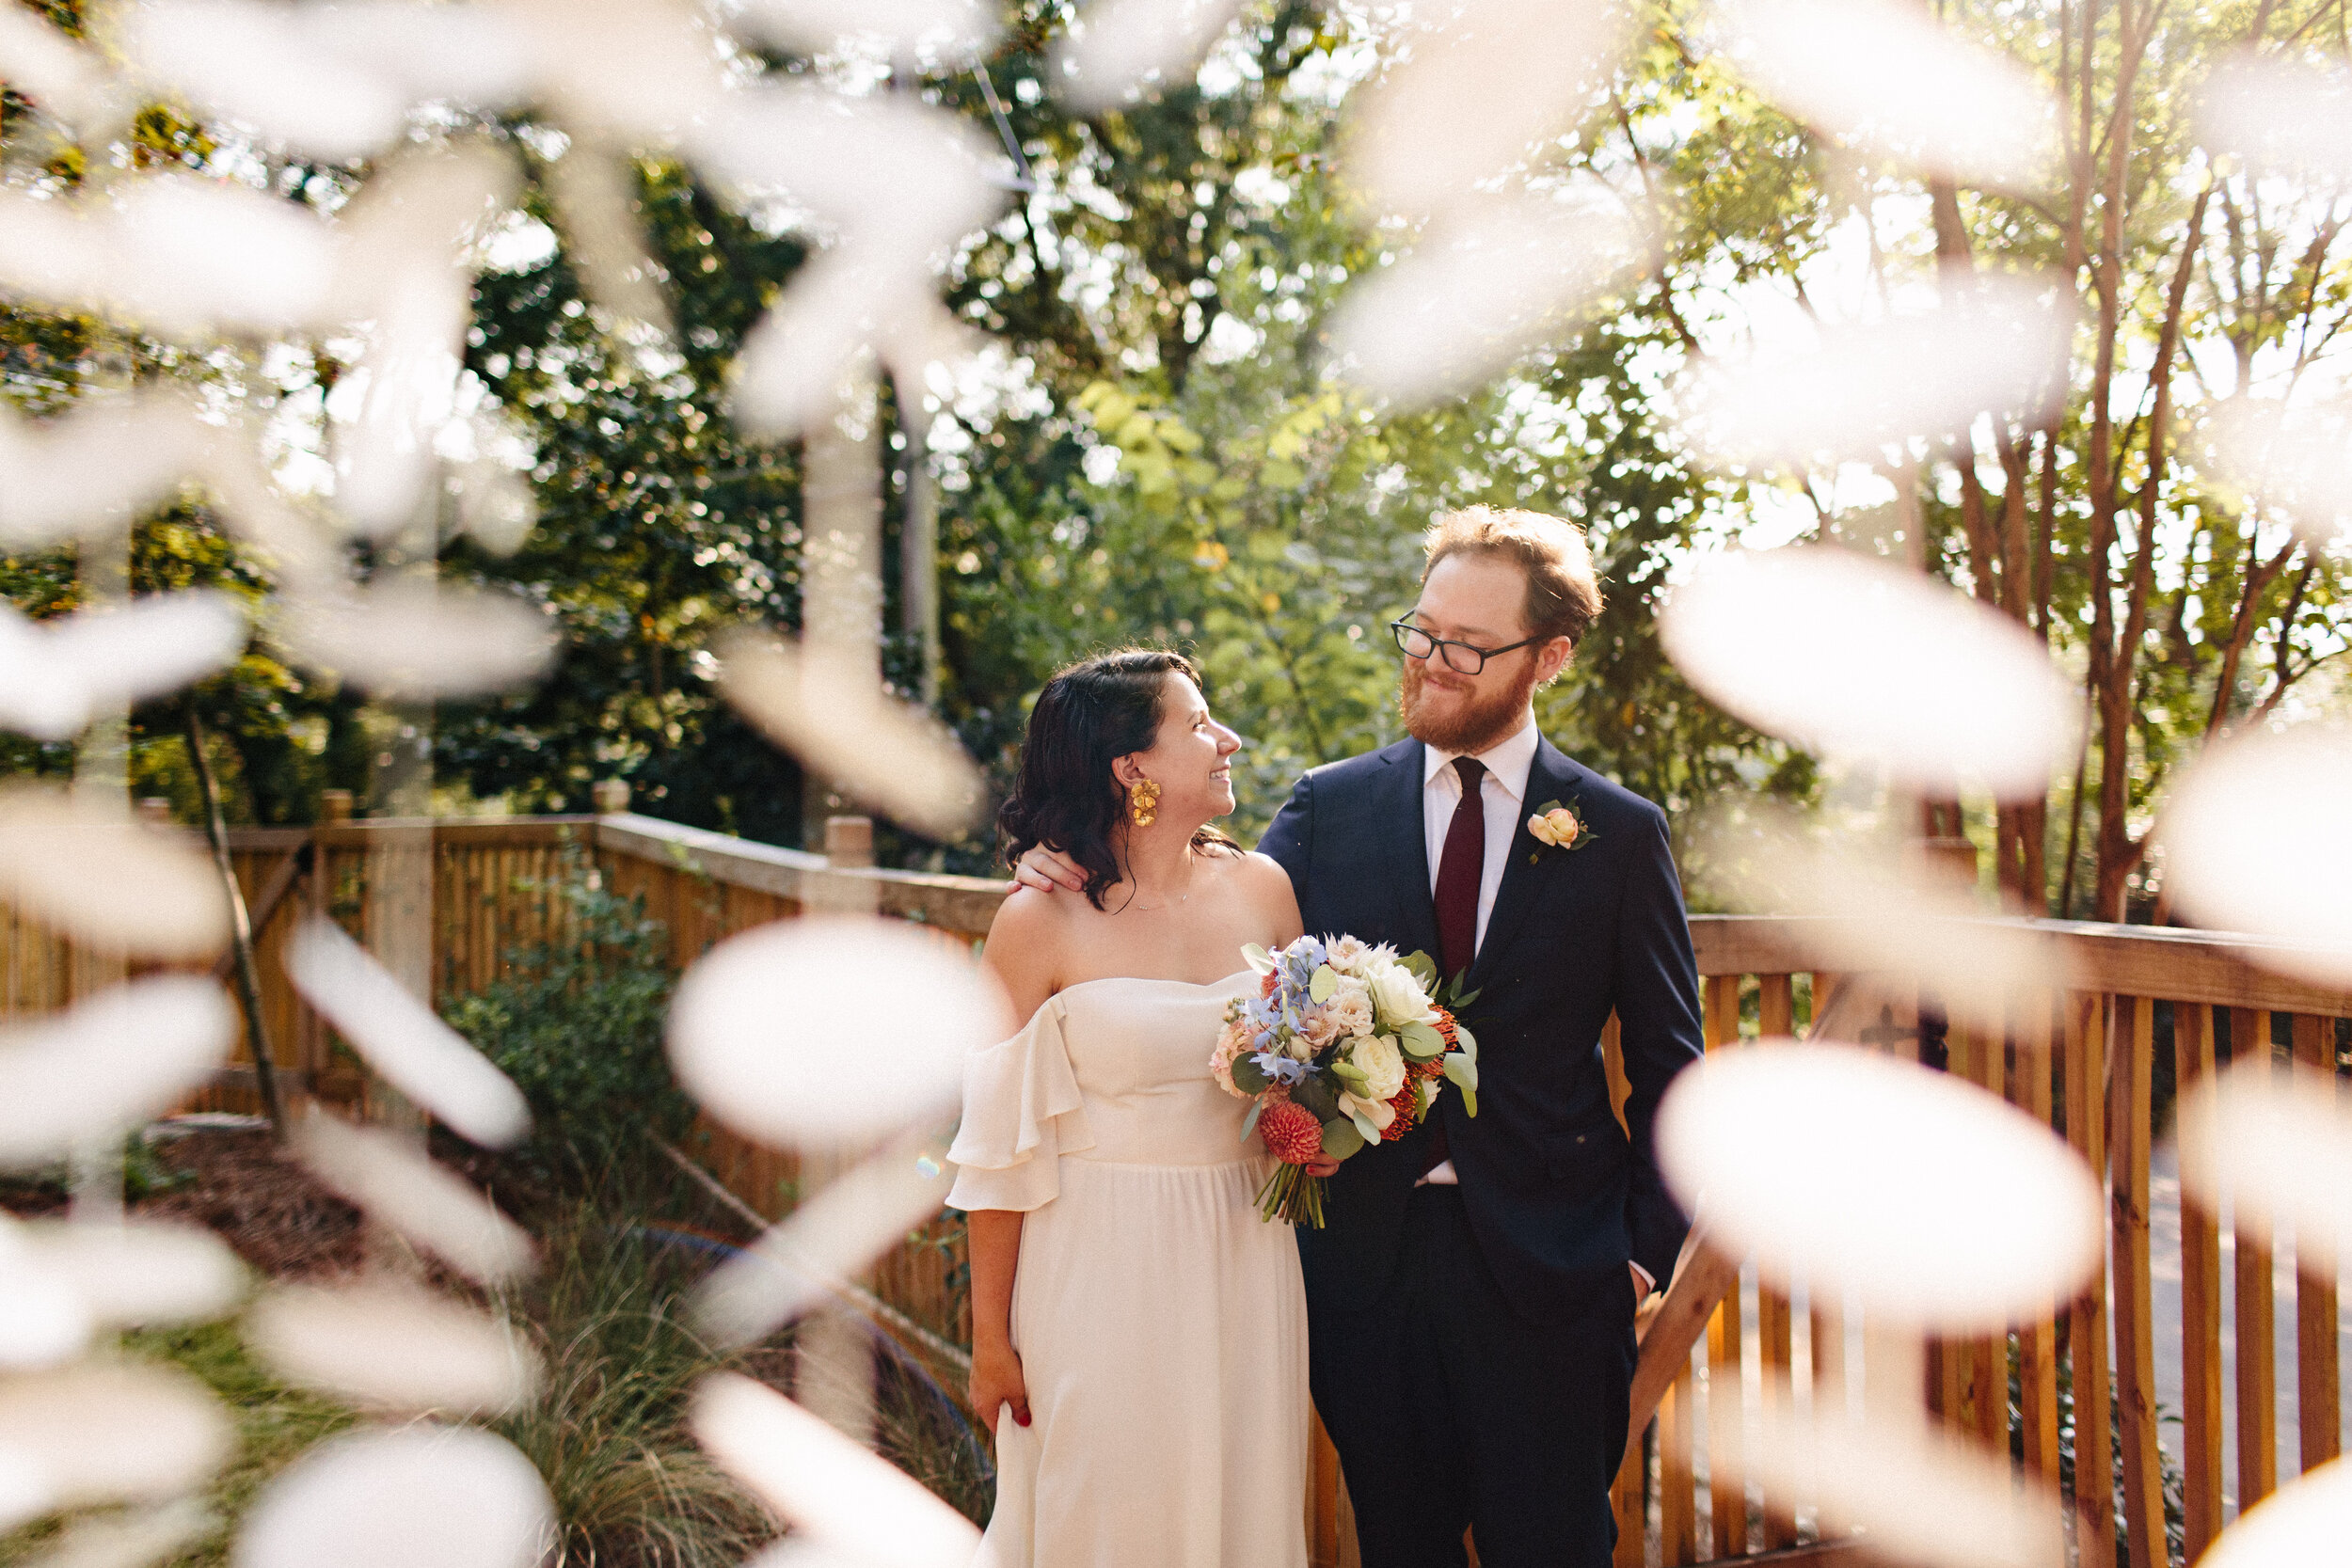 backyard_sun_in_my_belly_wedding_diy_at_home_atlanta_inman_park_arty_photographer_1466.jpg